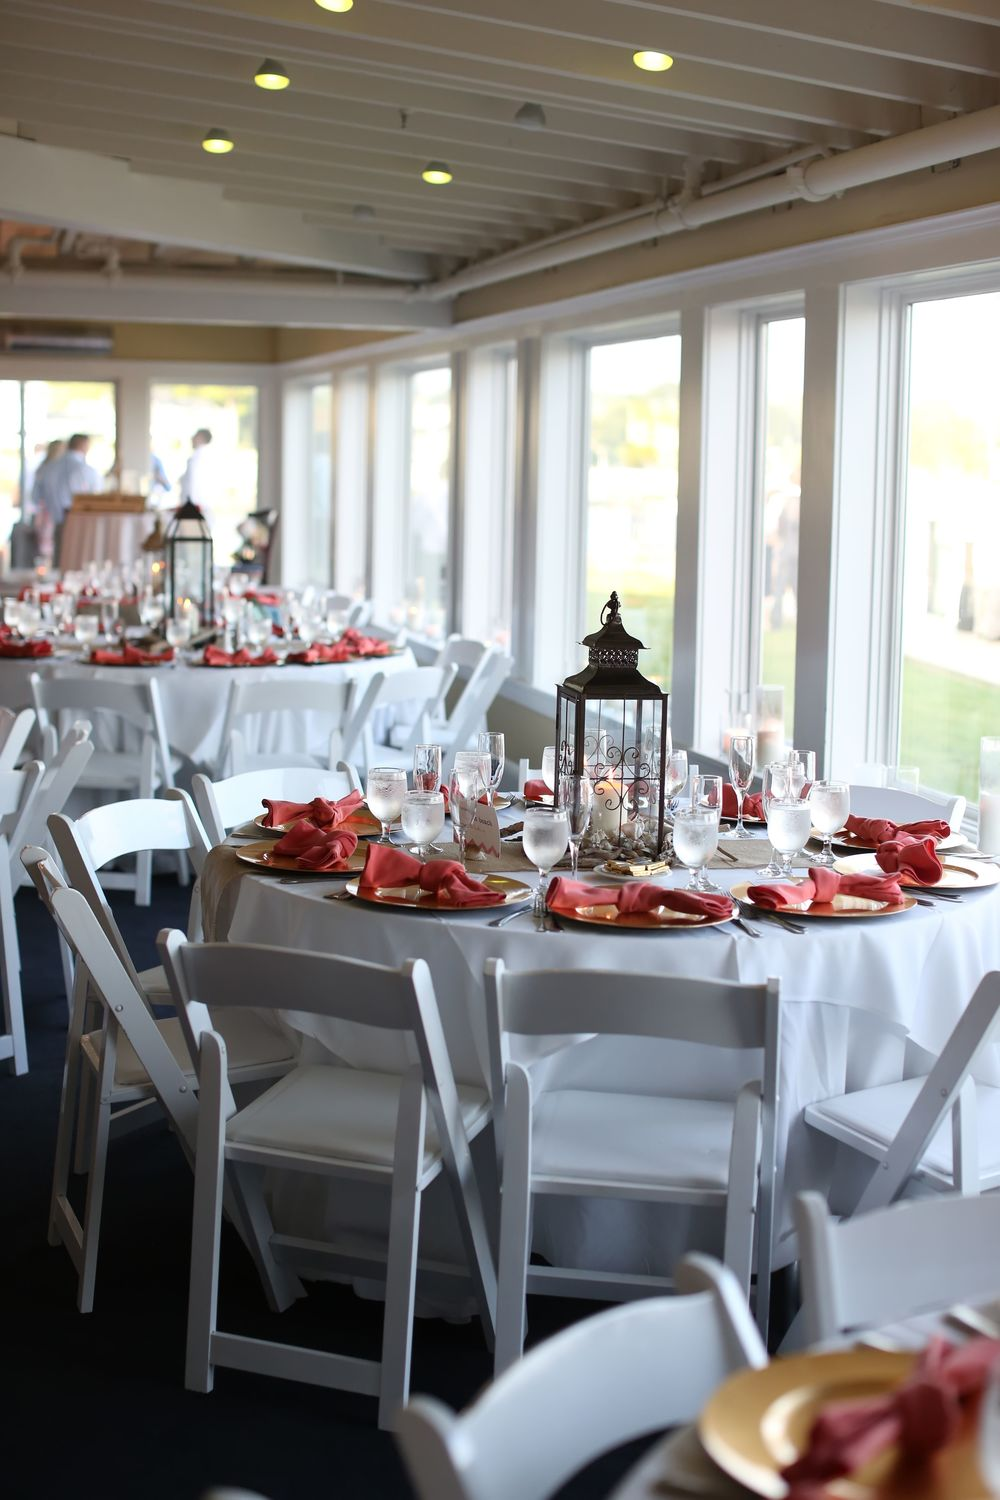 Milford Yacht Club Wedding Fairfield County Wedding Amy Champagne Events45.jpg